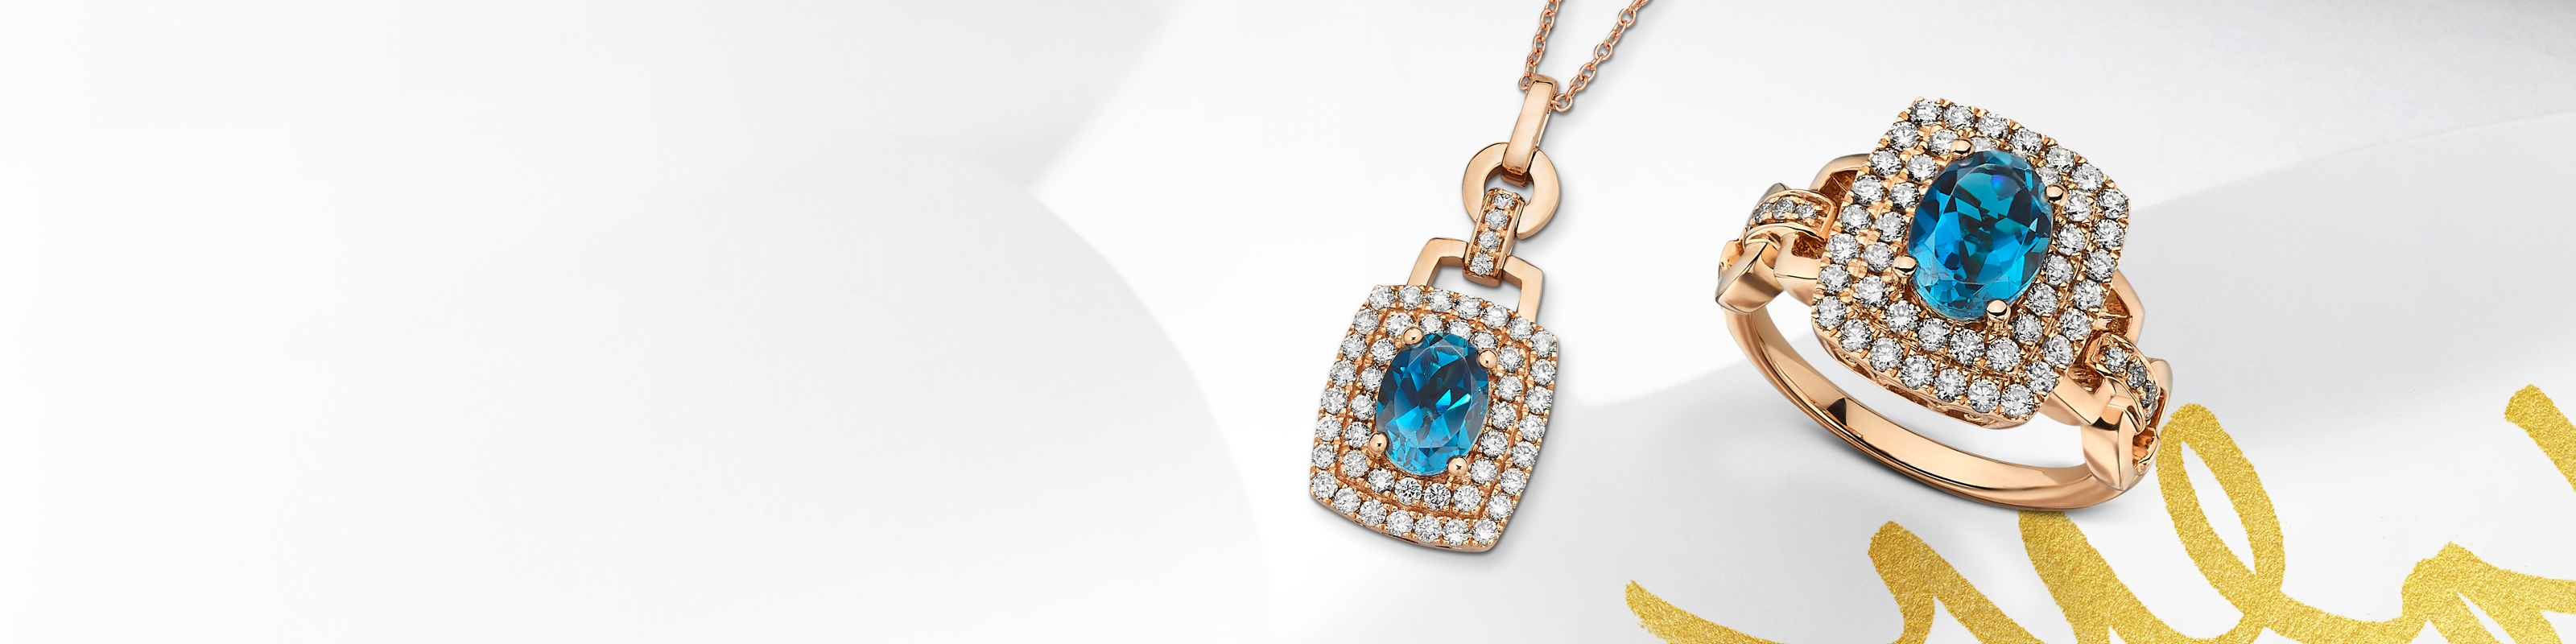 Blue topaz ring and necklace with diamond halos set in rose gold. Shop all blue topaz jewelry at Jared.